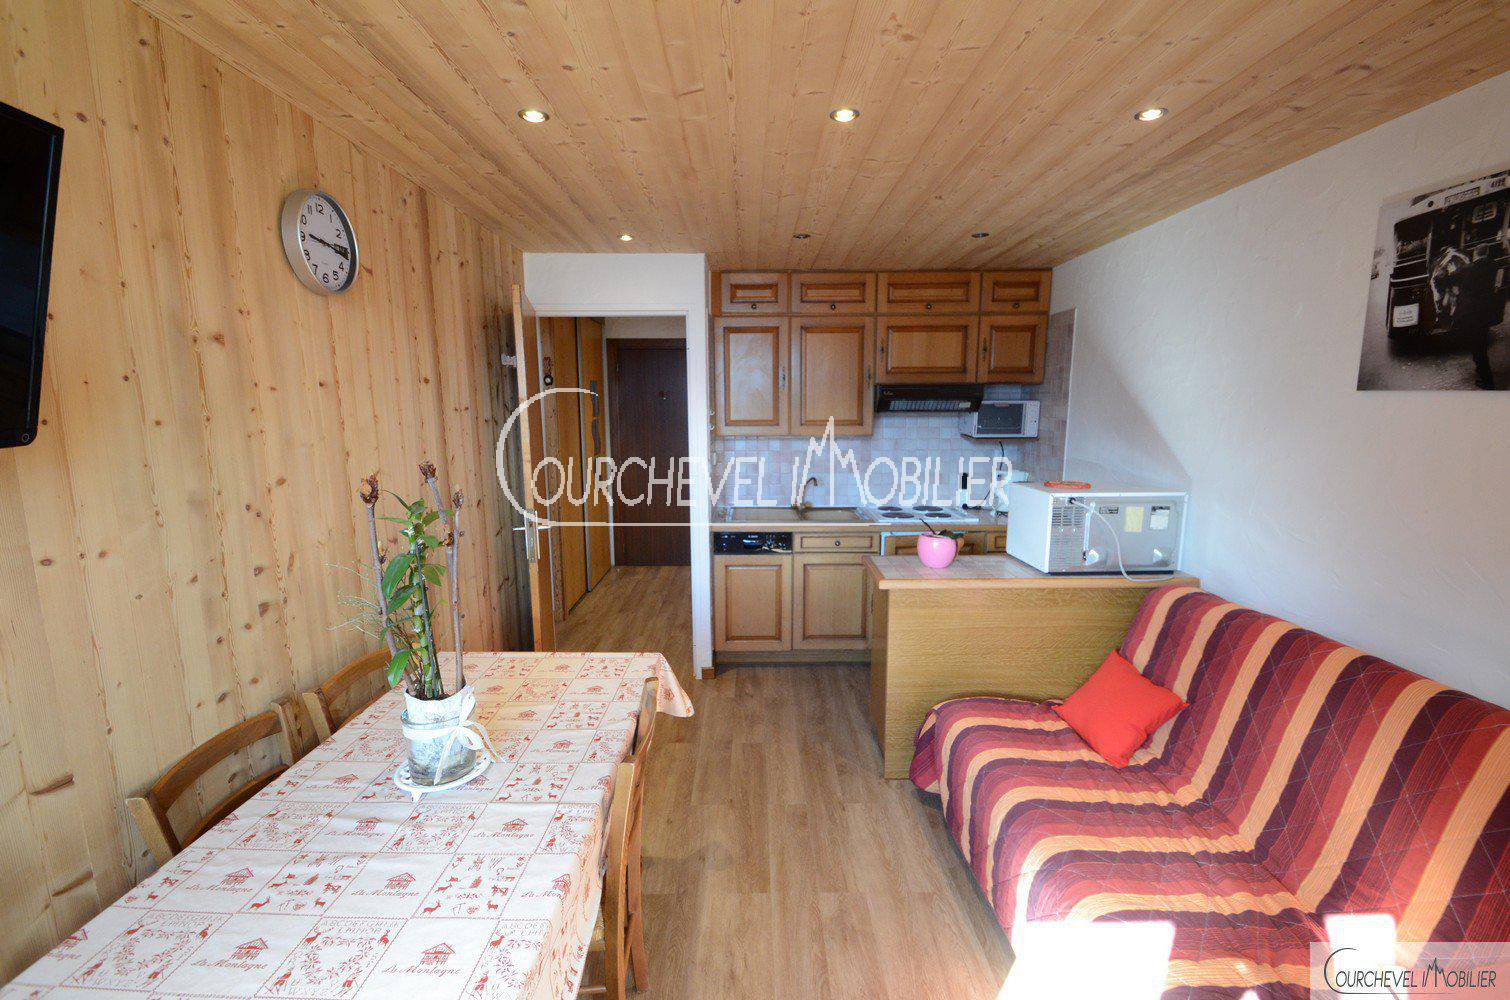 One Bedroom apartment - Courchevel Village